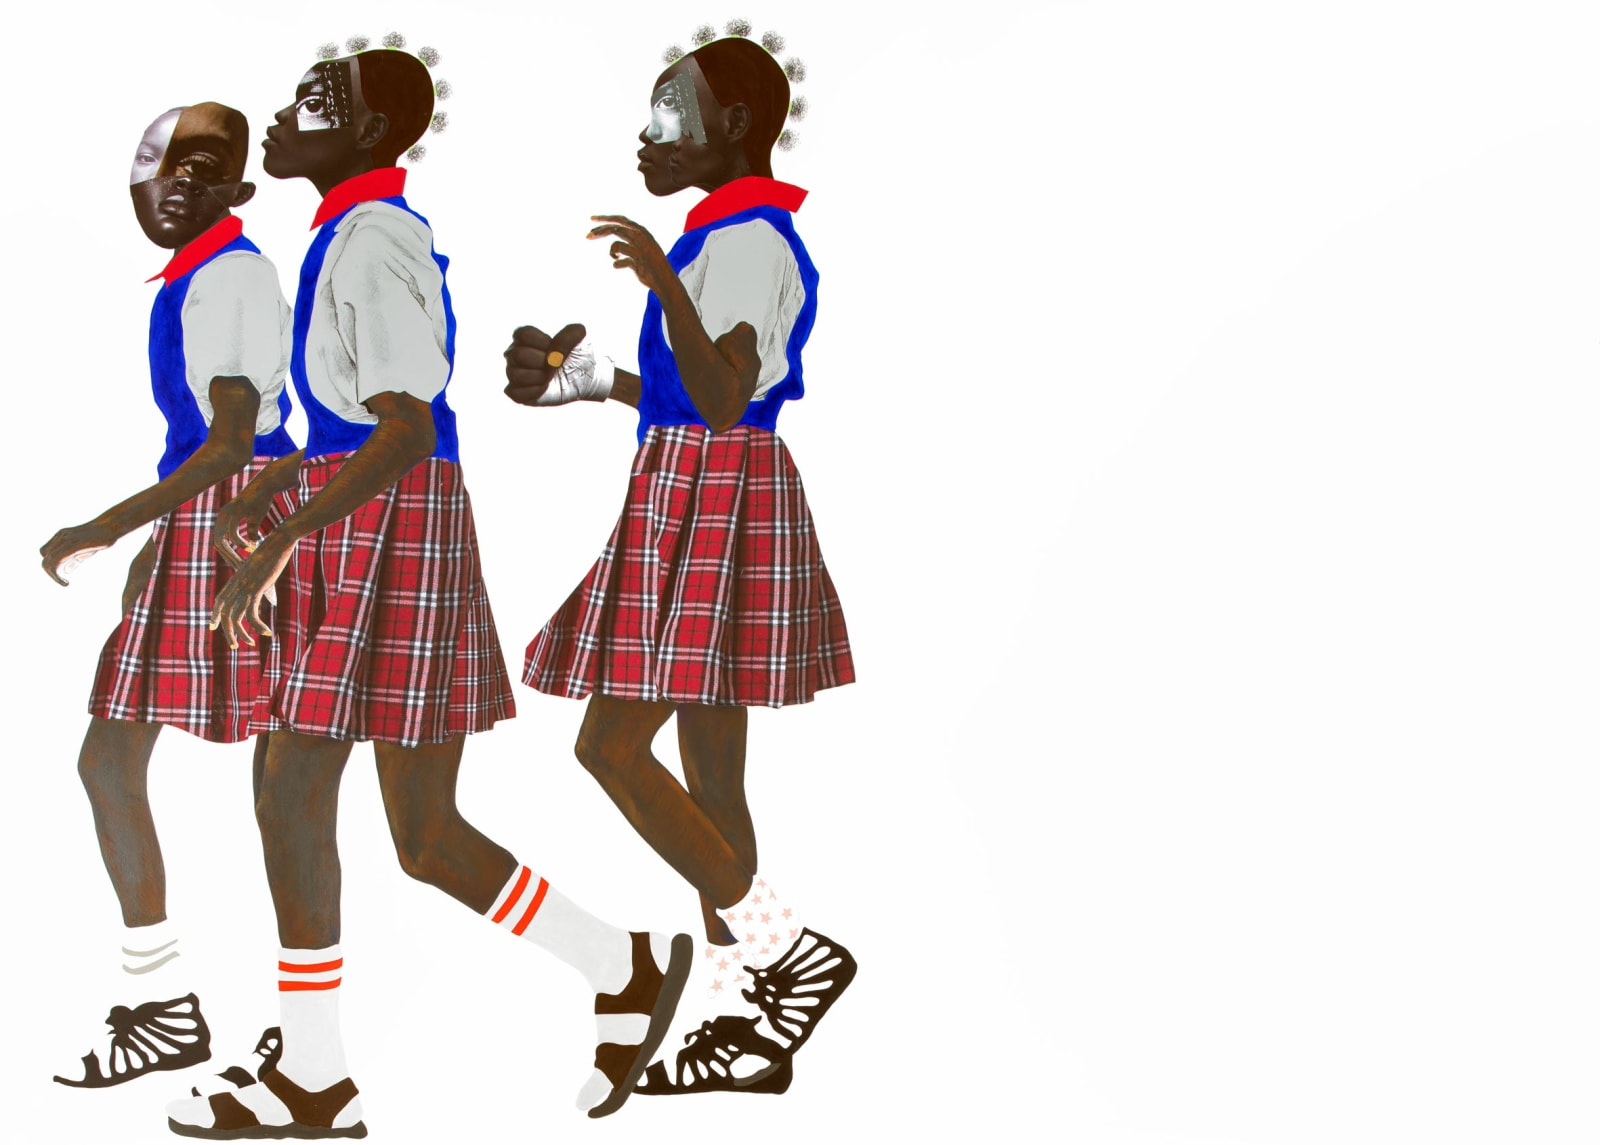 <div>Deborah Roberts, 'We are soldiers', 2019, Collection of the MFA Boston, MA.</div>